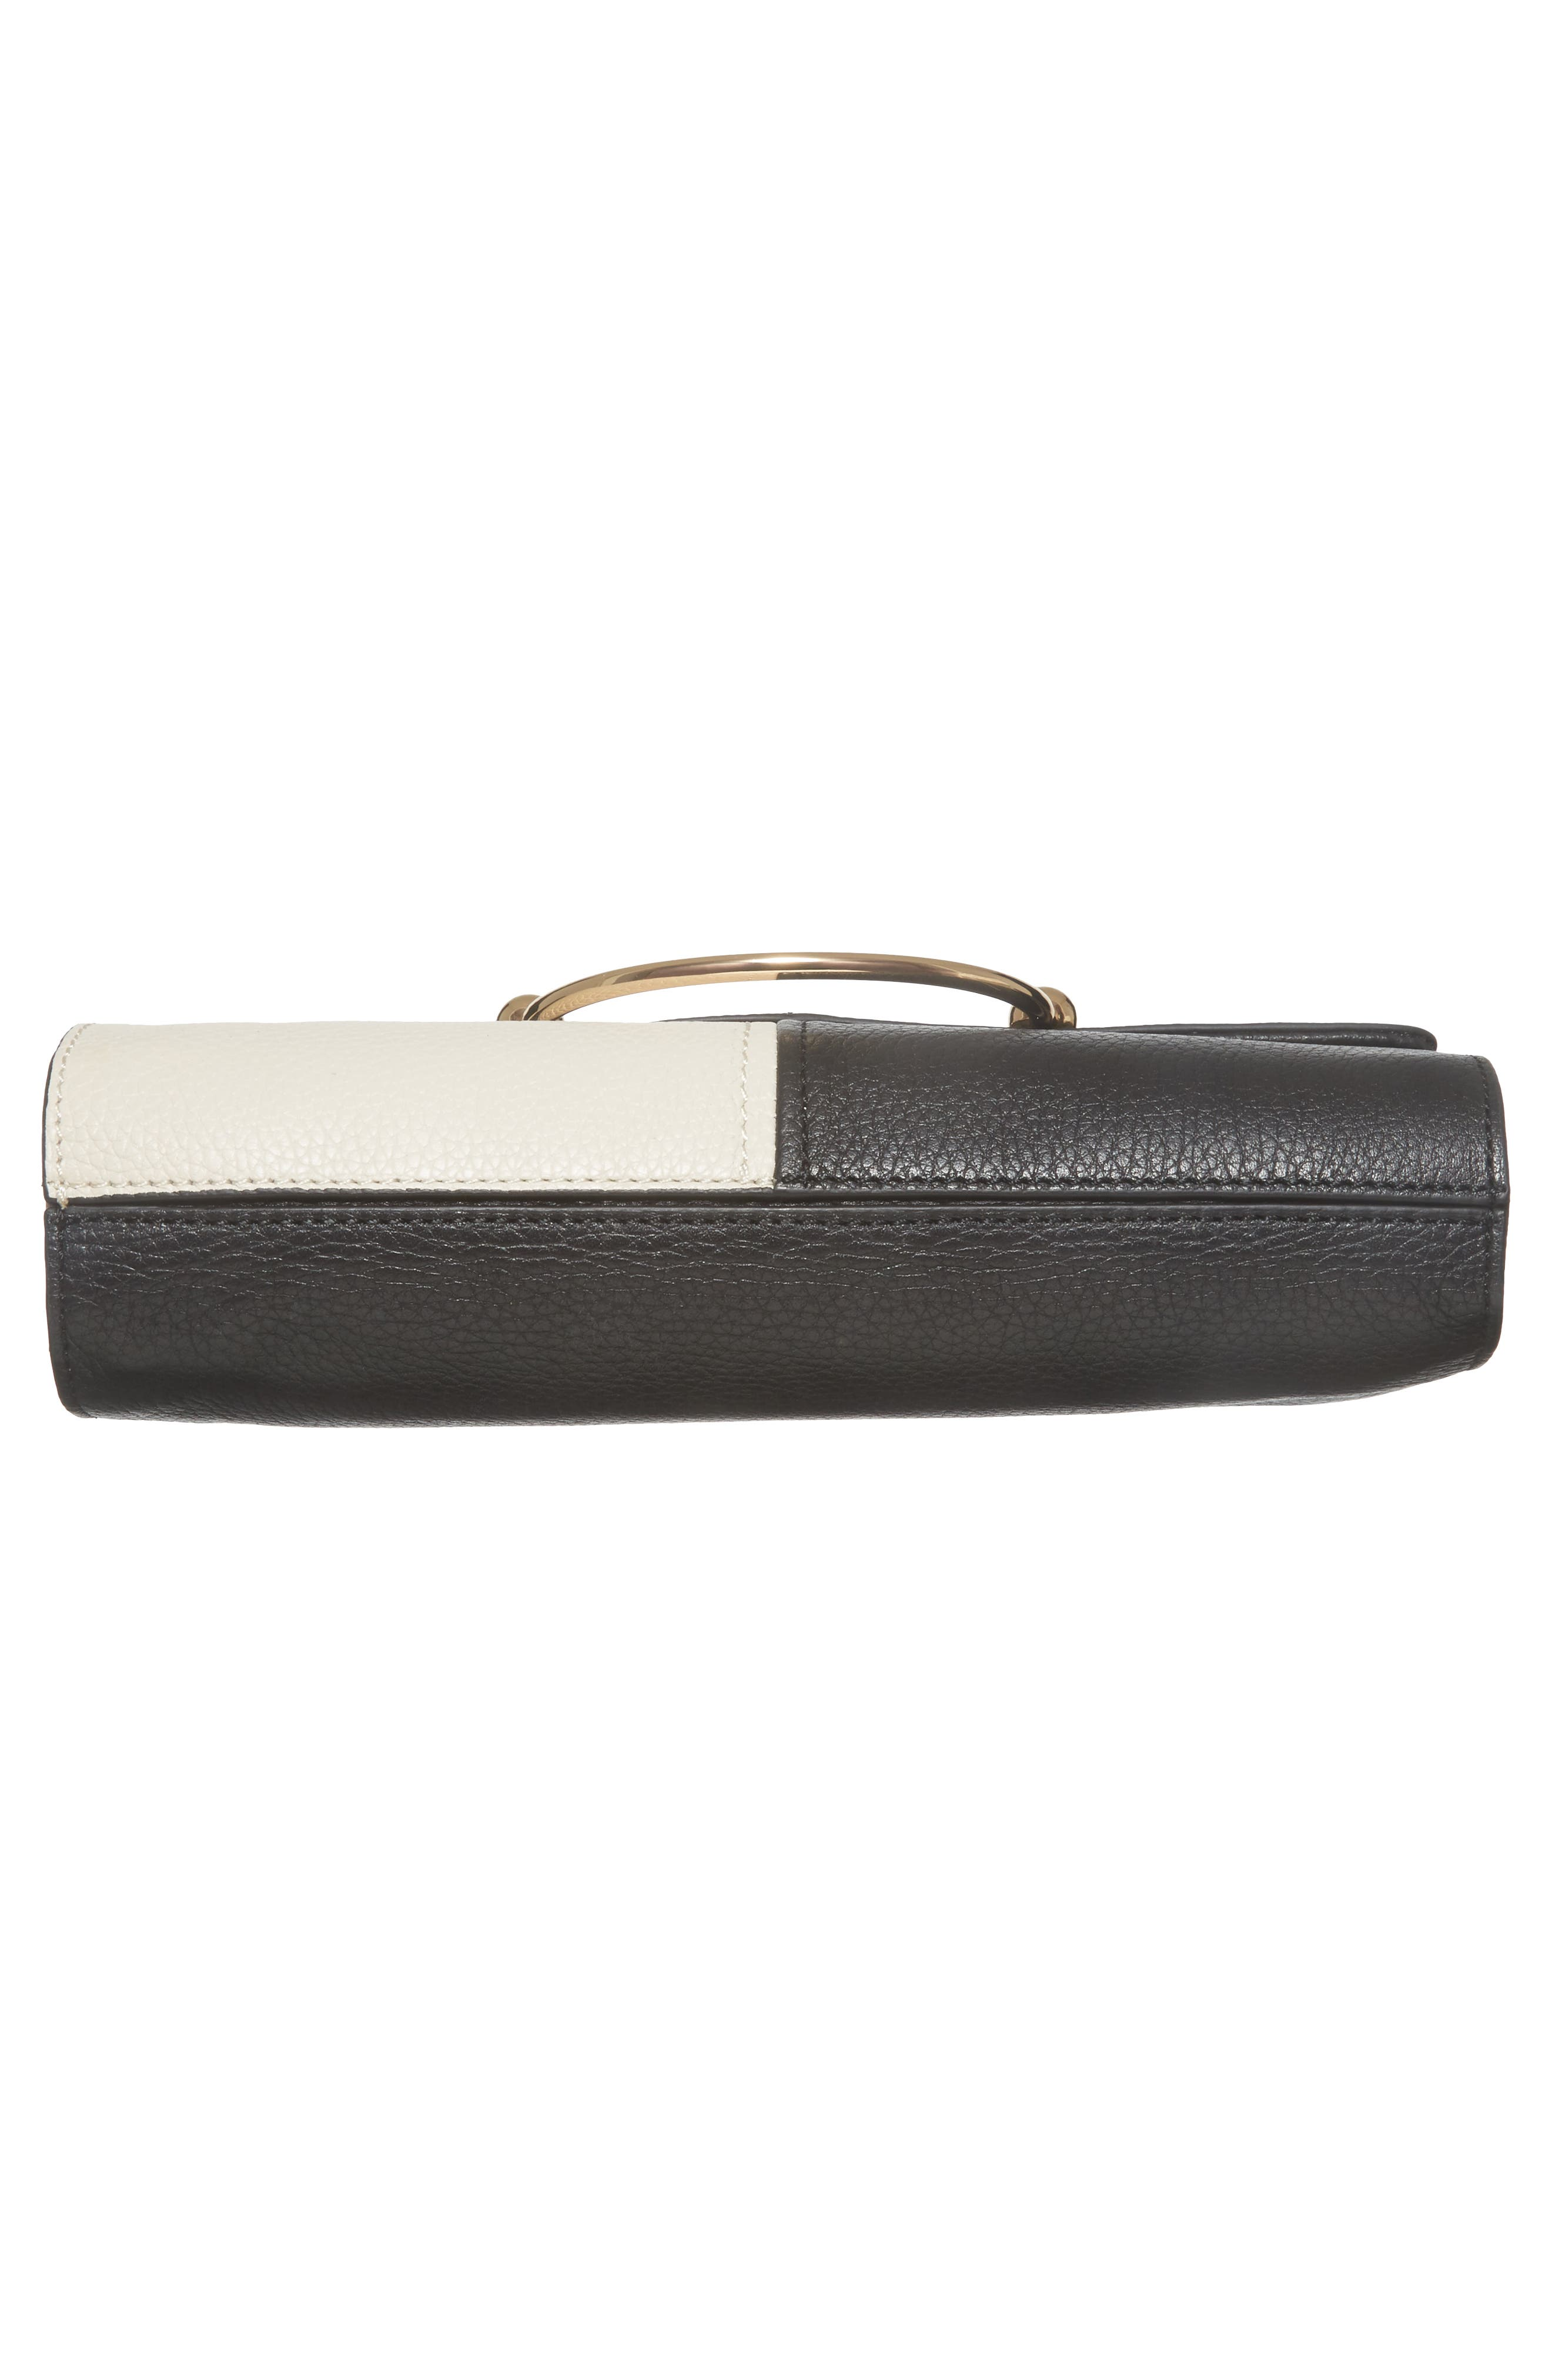 Astor Pebbled Leather Flap Clutch,                             Alternate thumbnail 22, color,